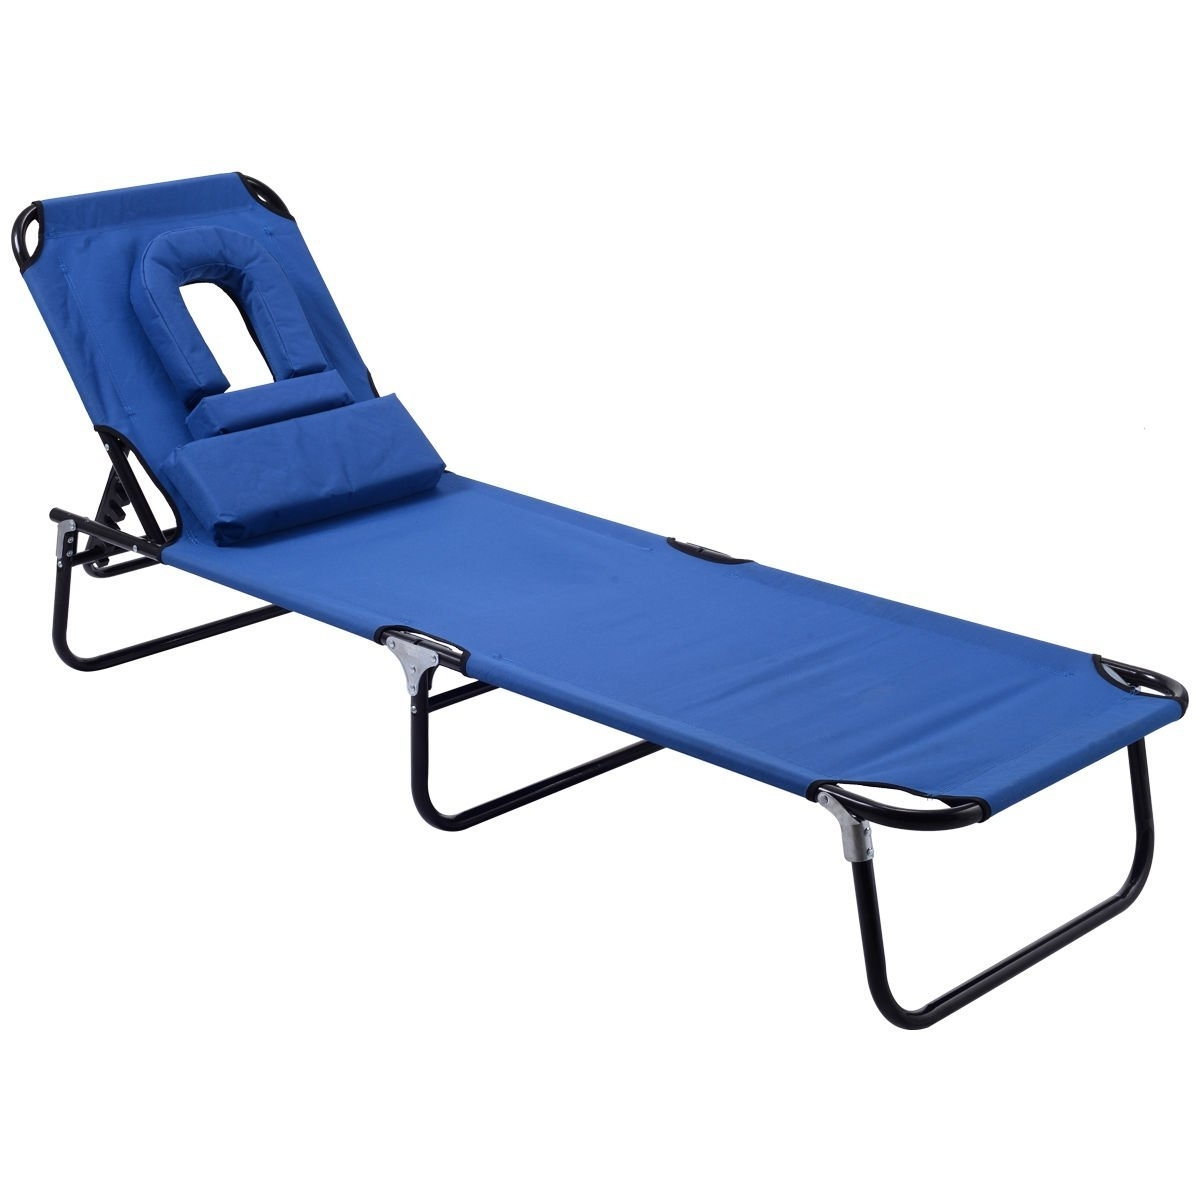 Amazon: Goplus Folding Chaise Lounge Chair Bed Outdoor Patio Pertaining To Best And Newest Beach Chaise Lounge Chairs (View 4 of 15)